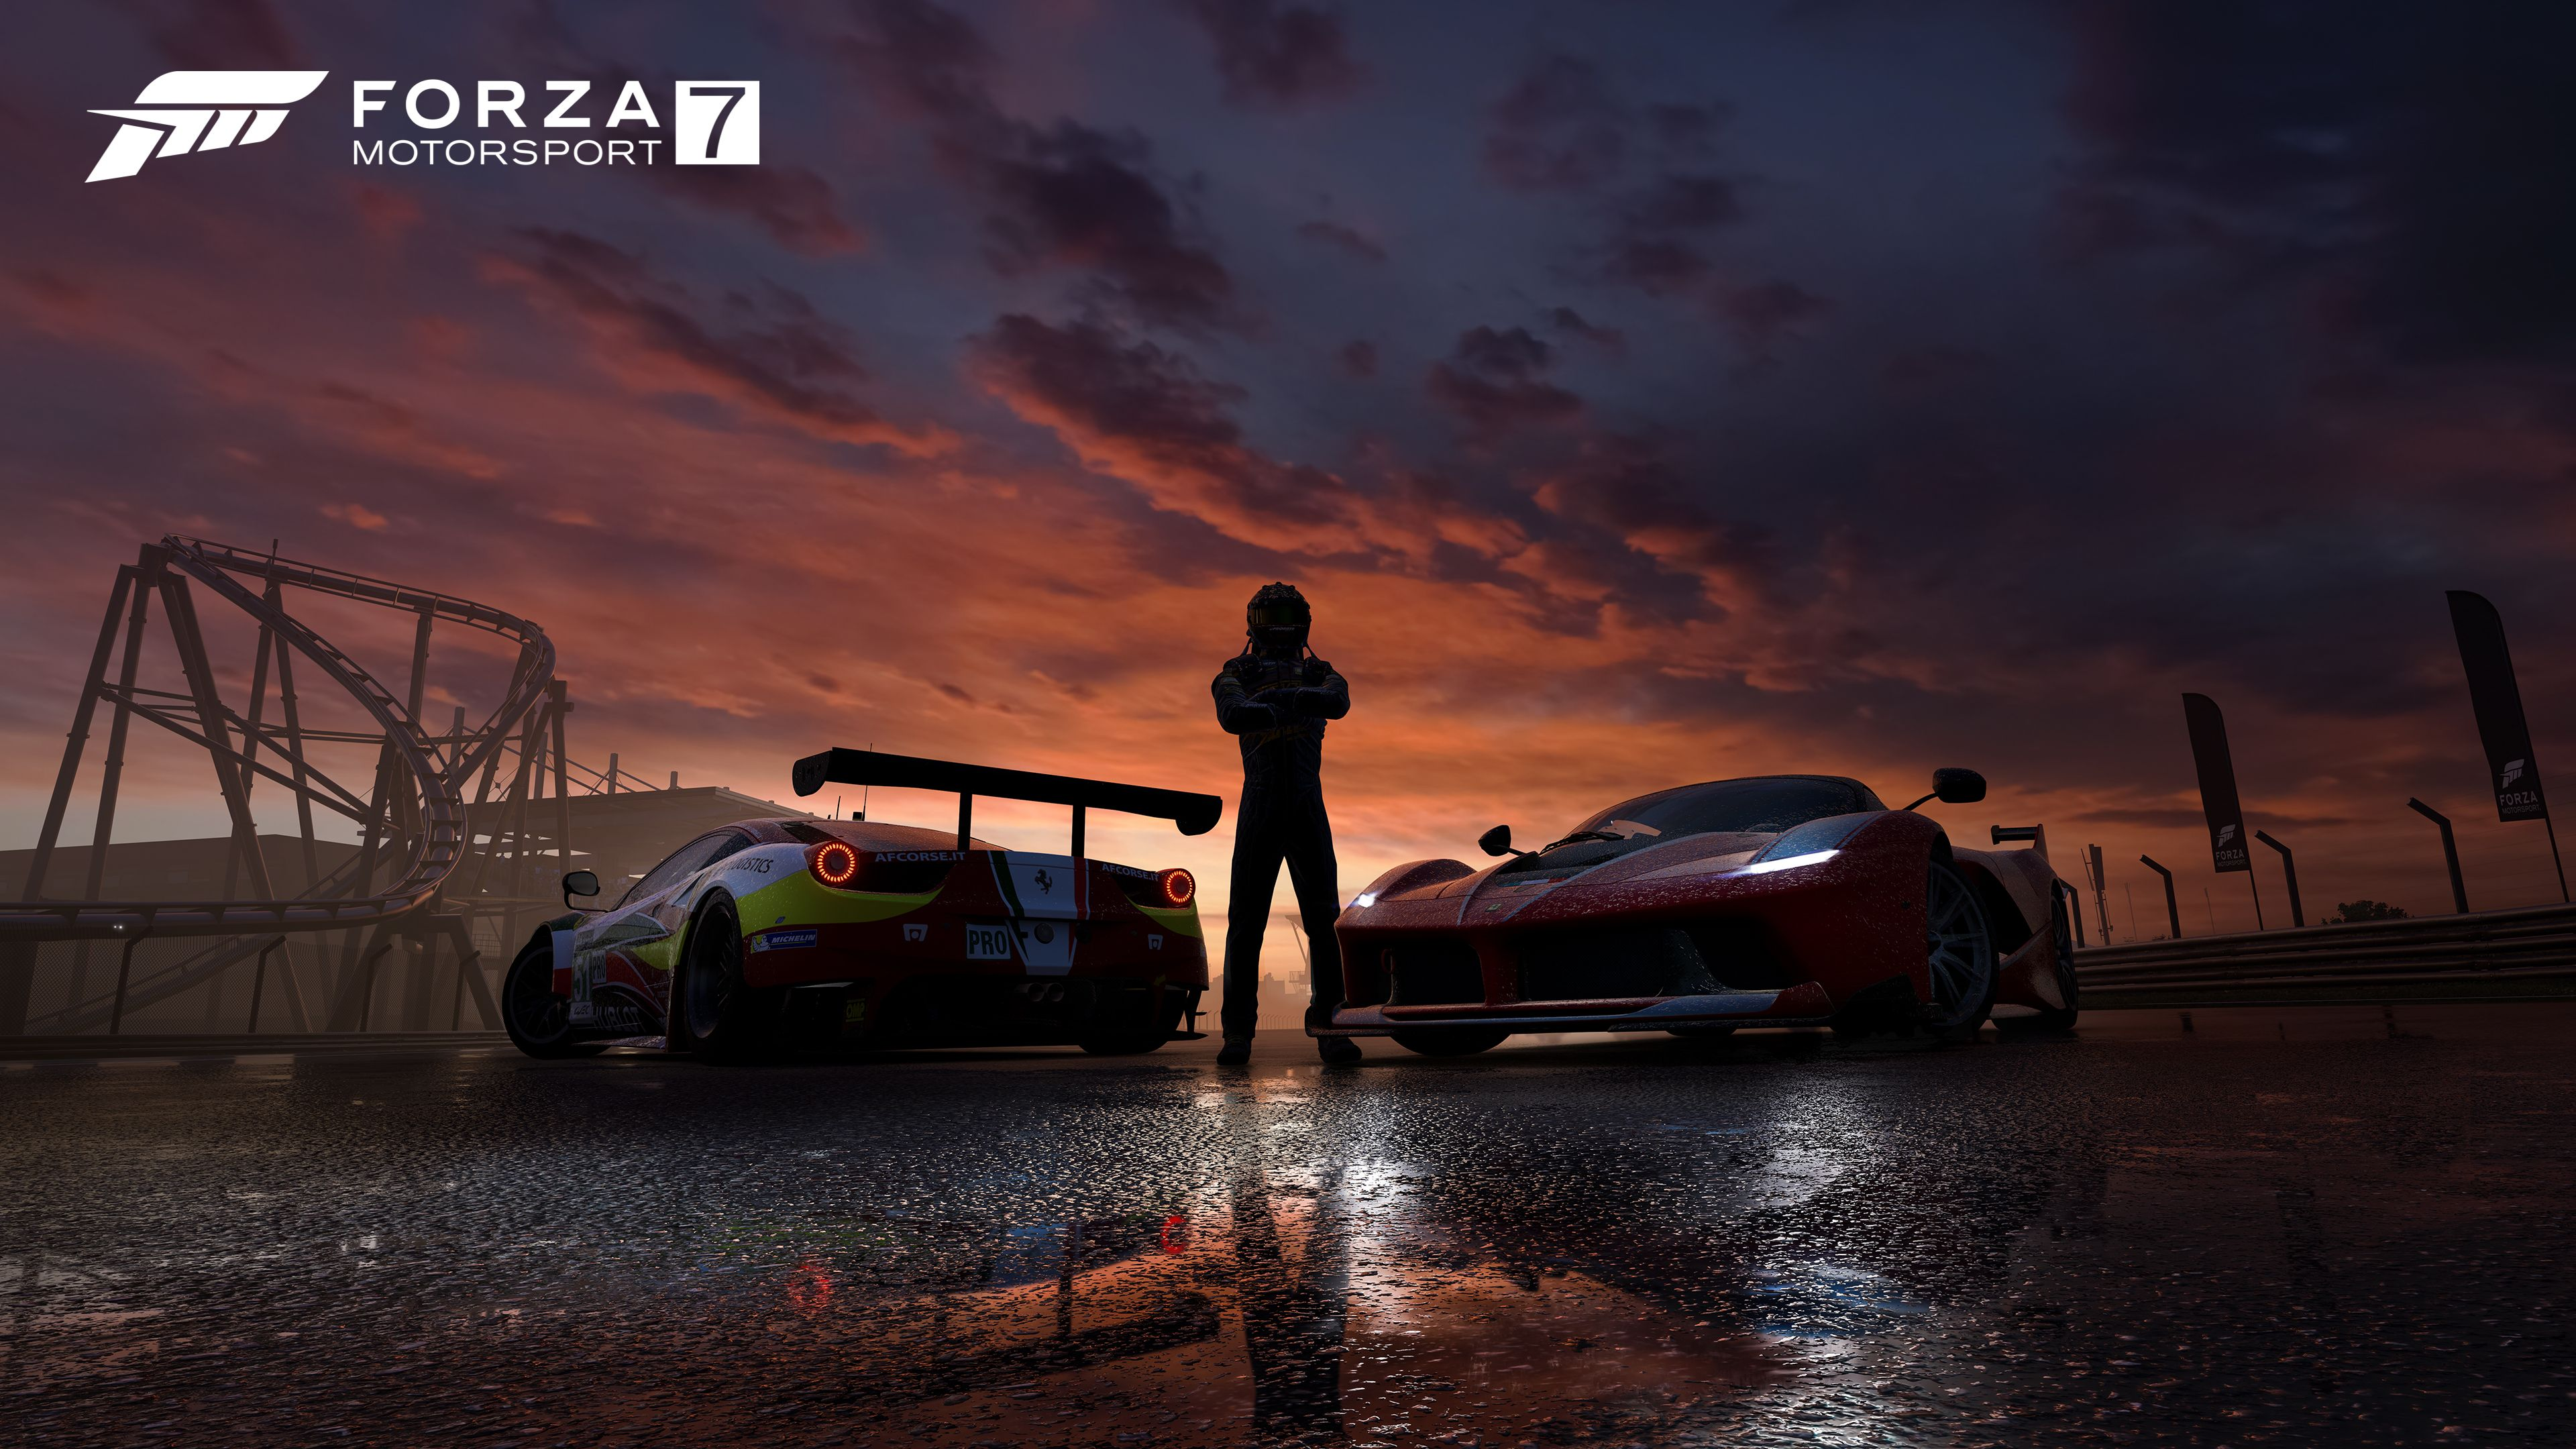 「forza motorsport 7 screenshot」の画像検索結果